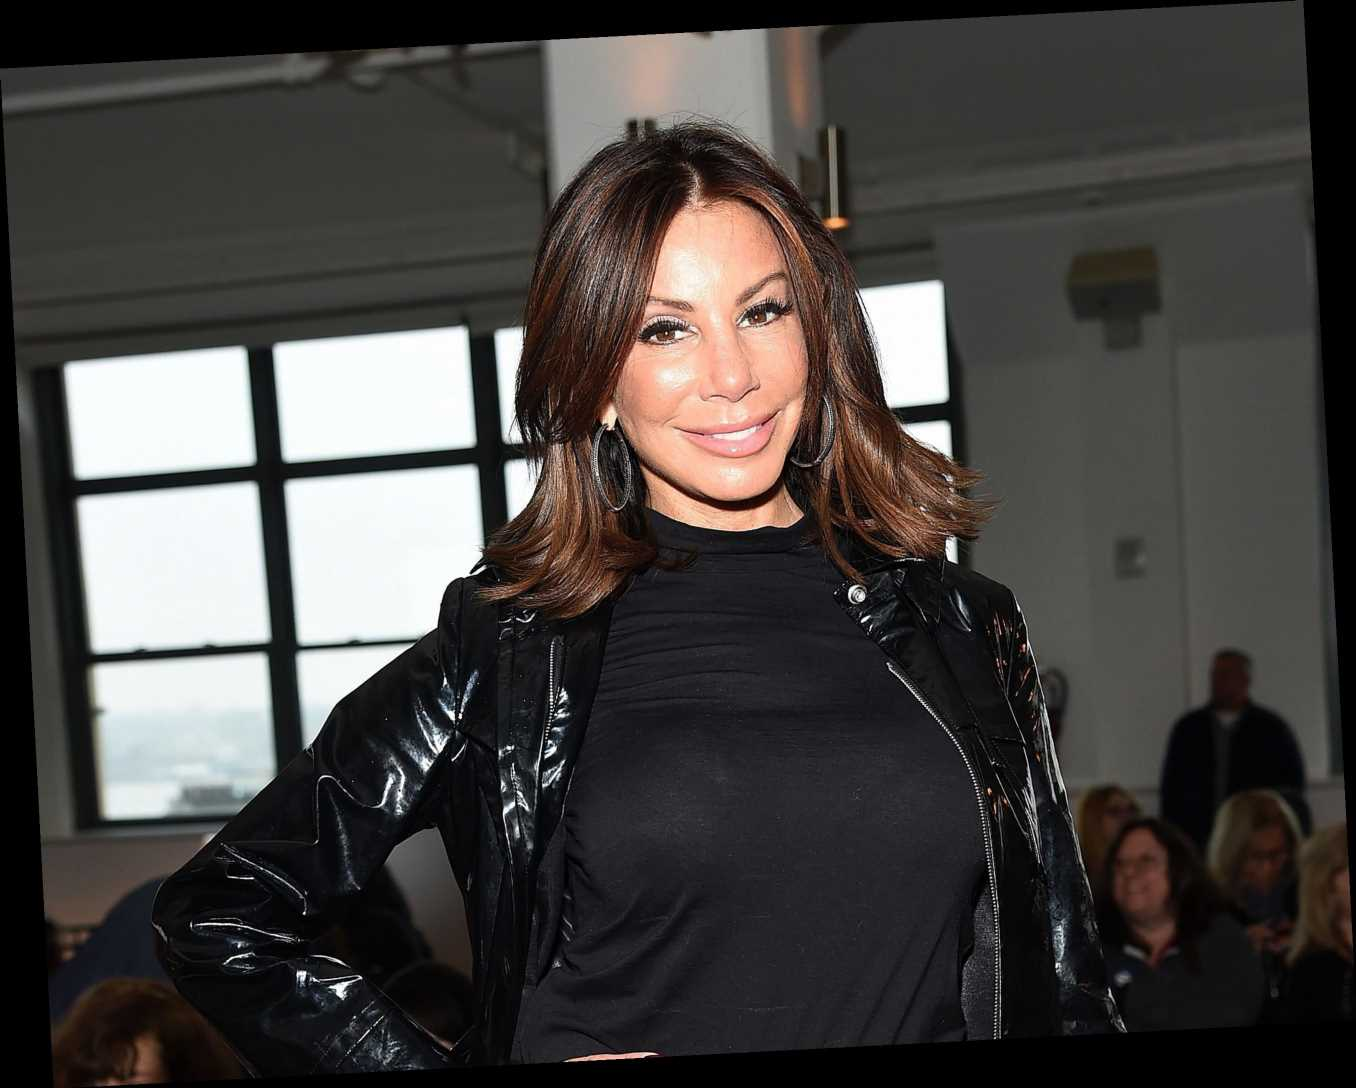 RHONJ's Danielle Staub says she's been engaged 19 TIMES by convincing men she was a VIRGIN – The Sun